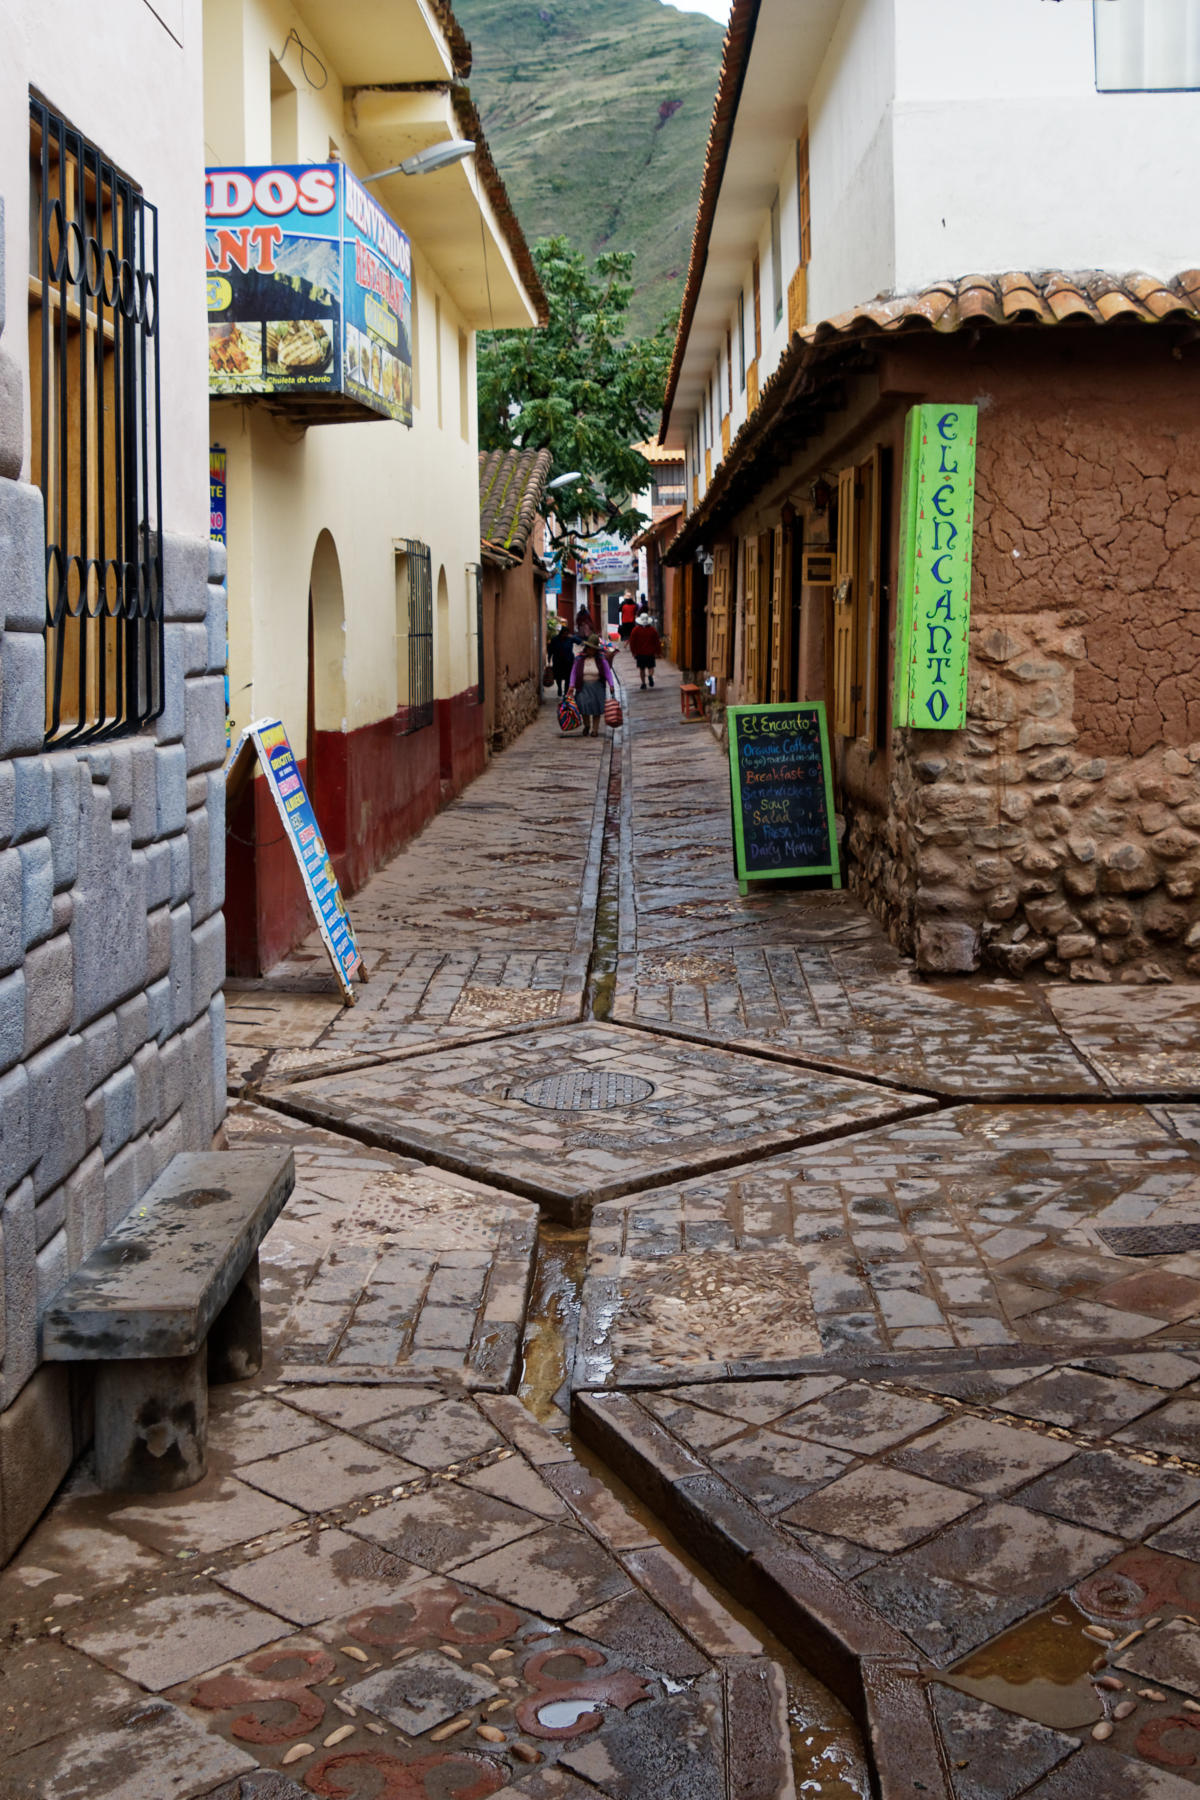 Pisac - aqueducts in the streets to distribute rainwater